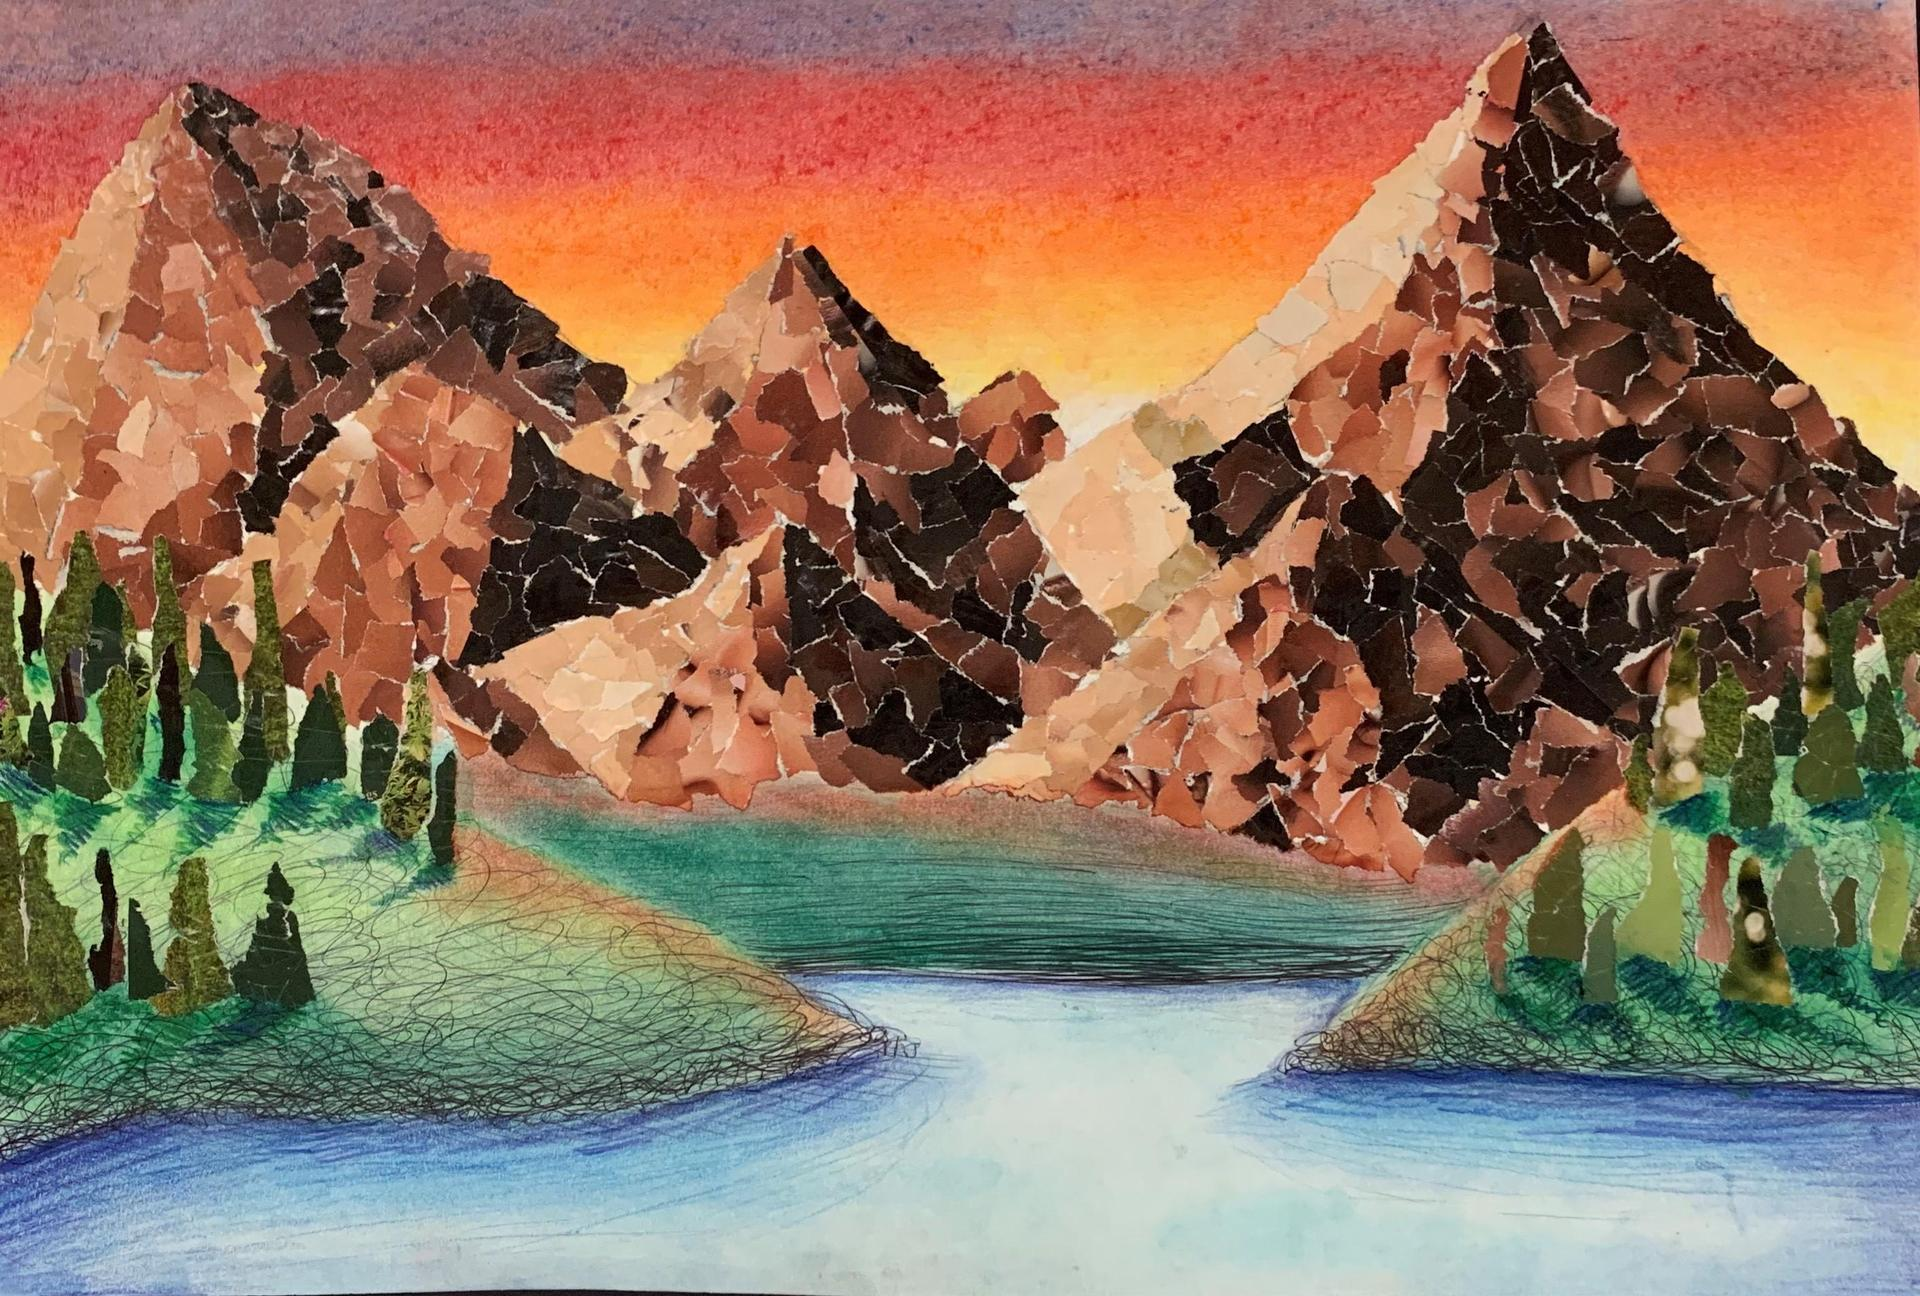 Painting of Mountains and Lake